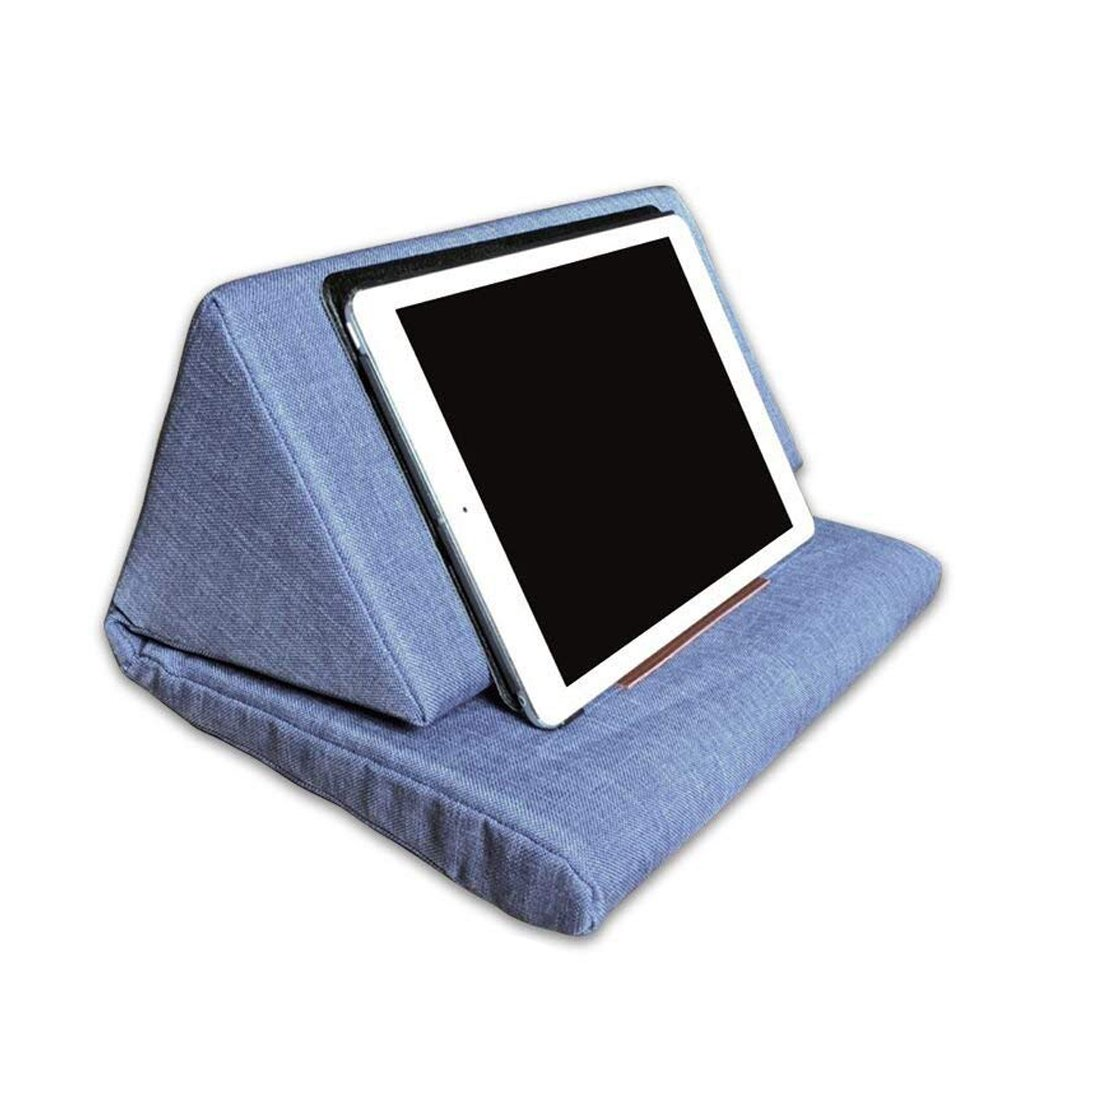 Tablet Pillow,Bagvhandbagro PadPillow Stand,Mini Tablet Holder Sofa Reading Stand,Self Standing Or Use on Lap, Bed, Sofa,Couch,for Galaxy and IPad